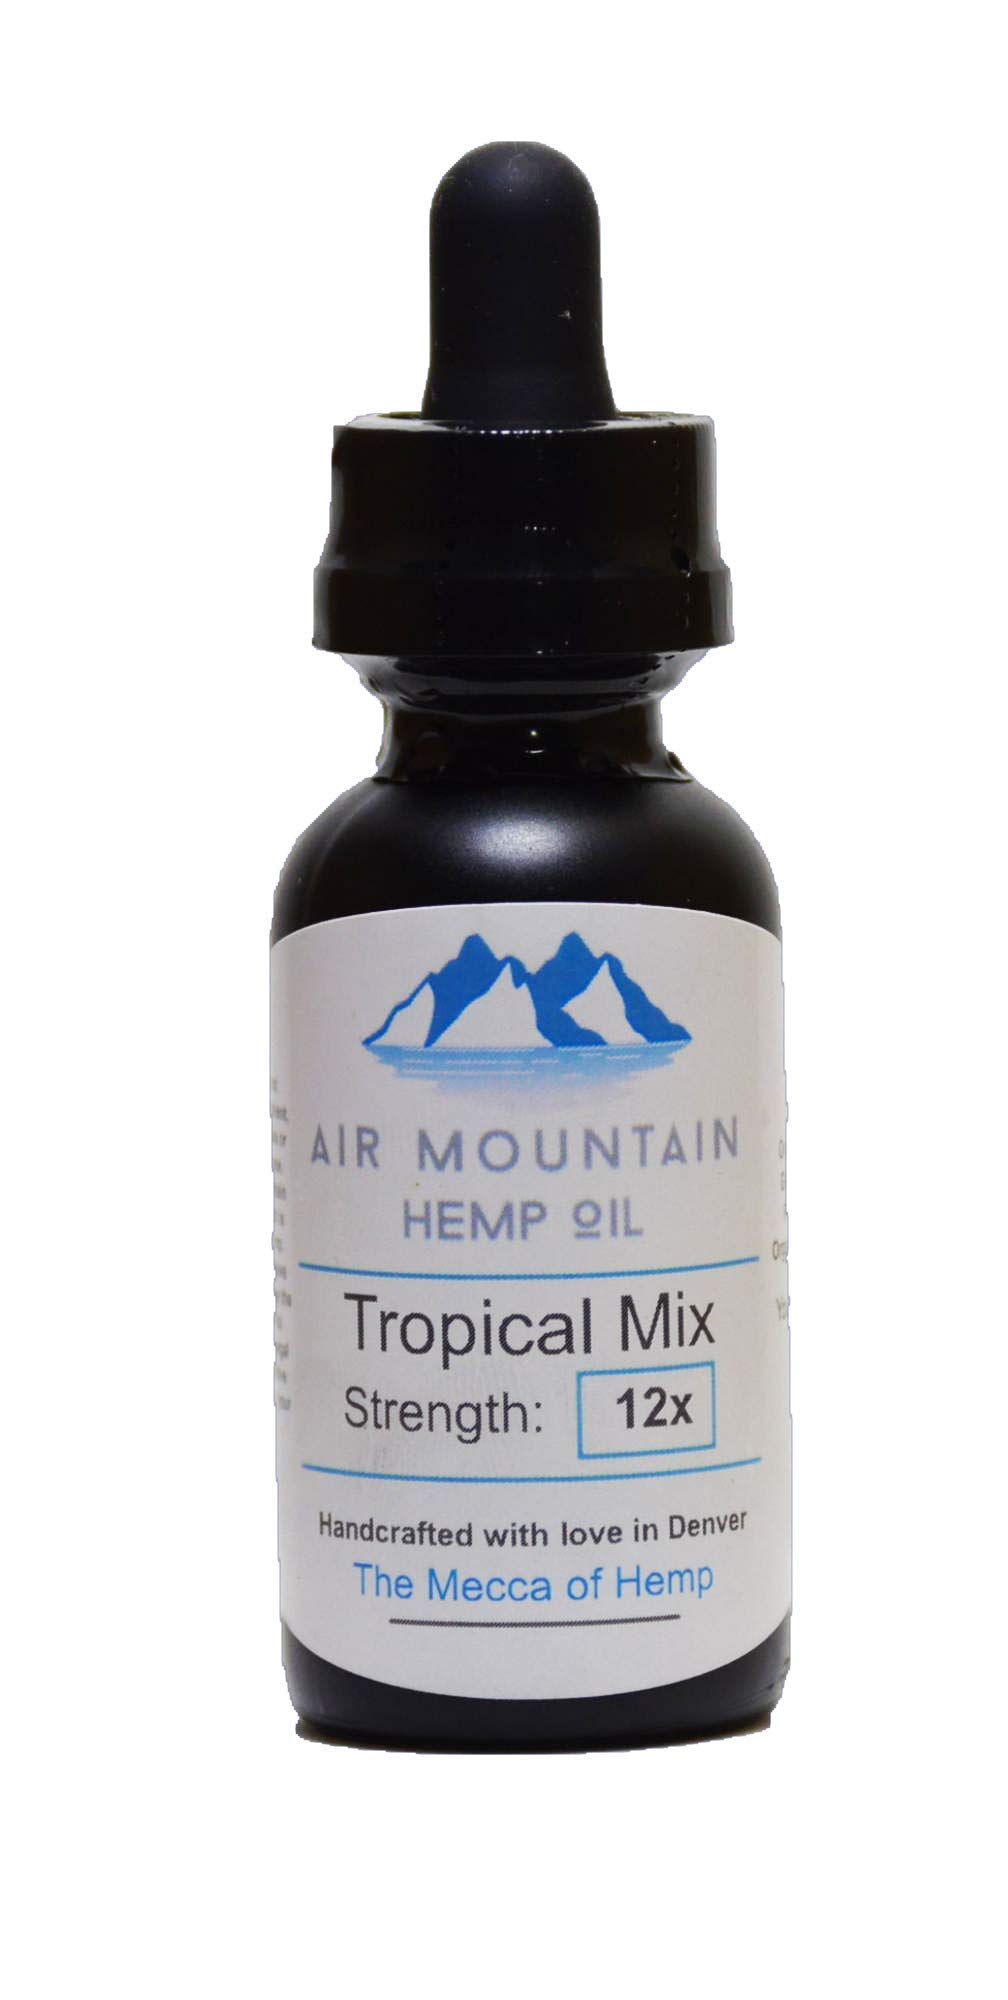 Air Mountain Hemp Oil [Tropical Mix] [Strength: 12] - Anxiety Relief - Social Anxiety Relief - Depersonalization Relief